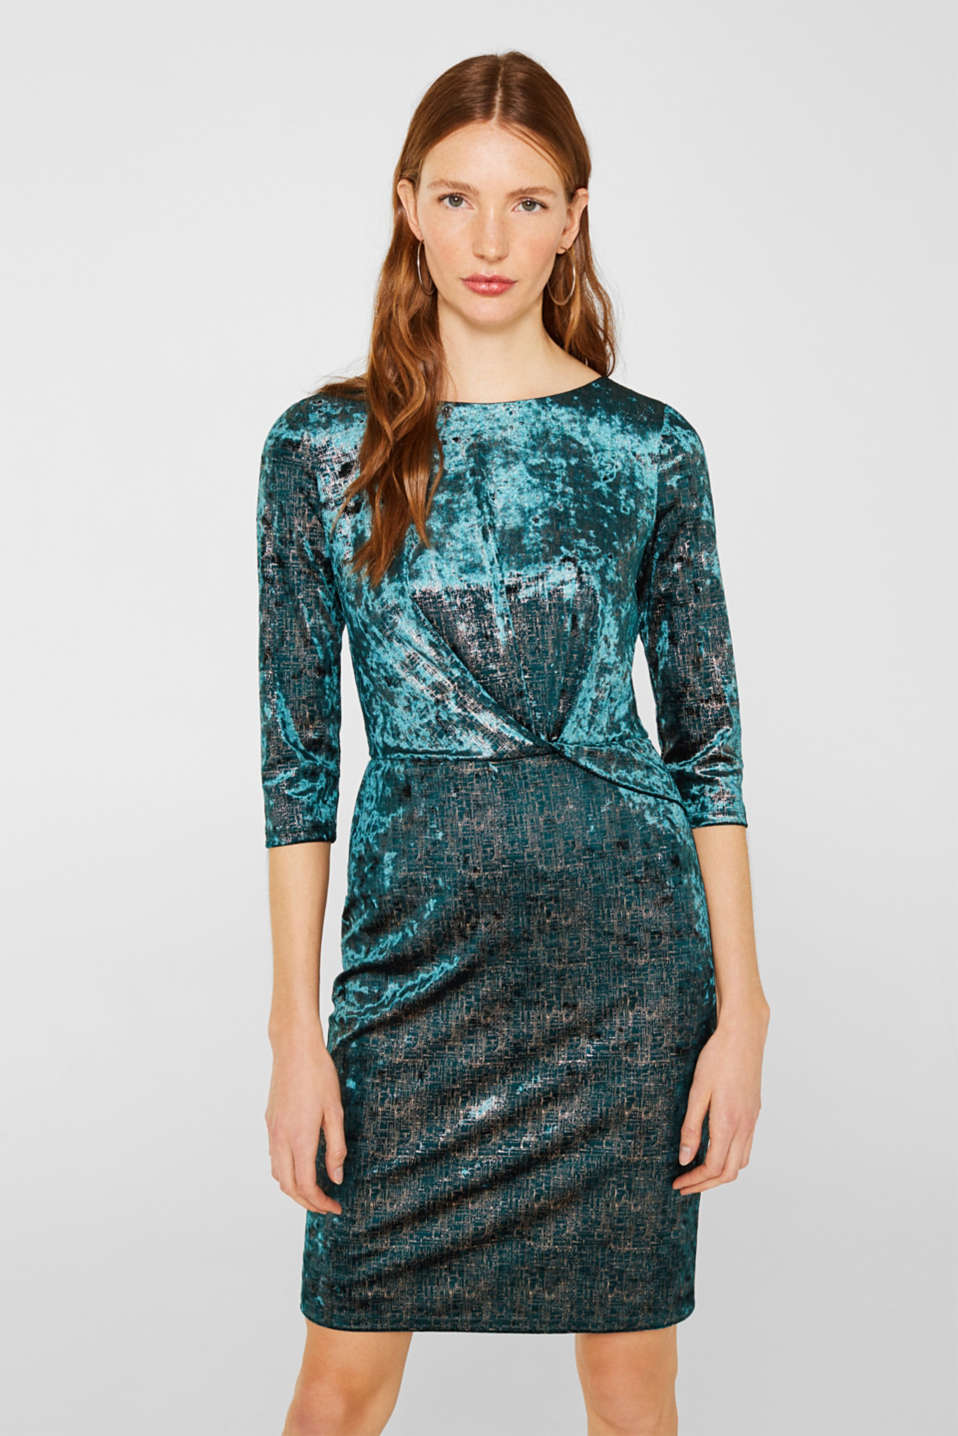 Esprit - Stretch dress made of velvet with interwoven gold threads